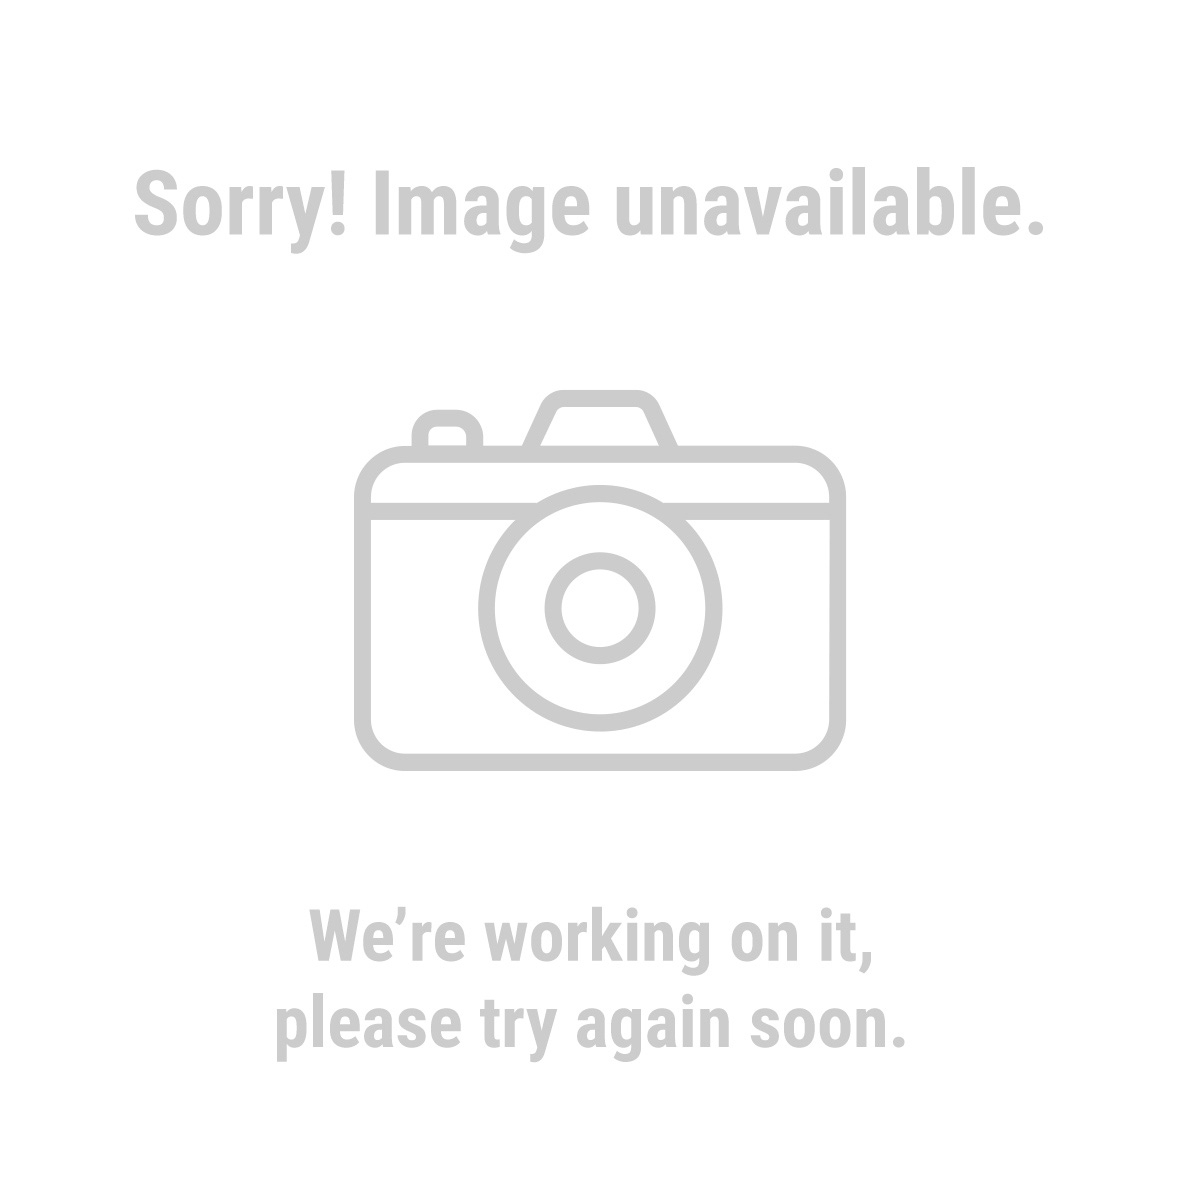 Pittsburgh® 63185 4-in-1 Aluminum Rafter Angle Square